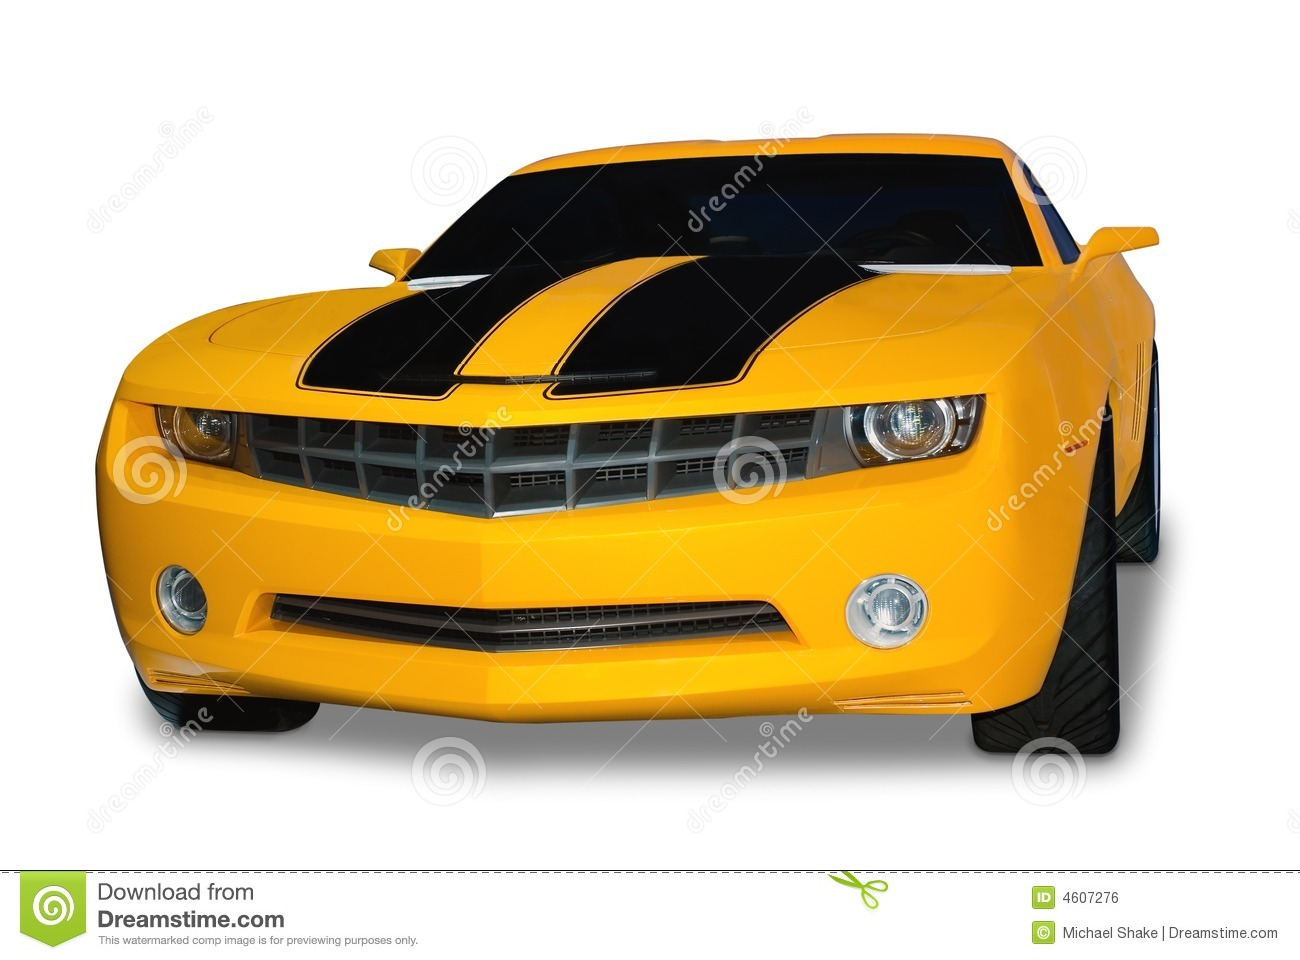 yellow sports car royalty free stock image image 4607276. Black Bedroom Furniture Sets. Home Design Ideas